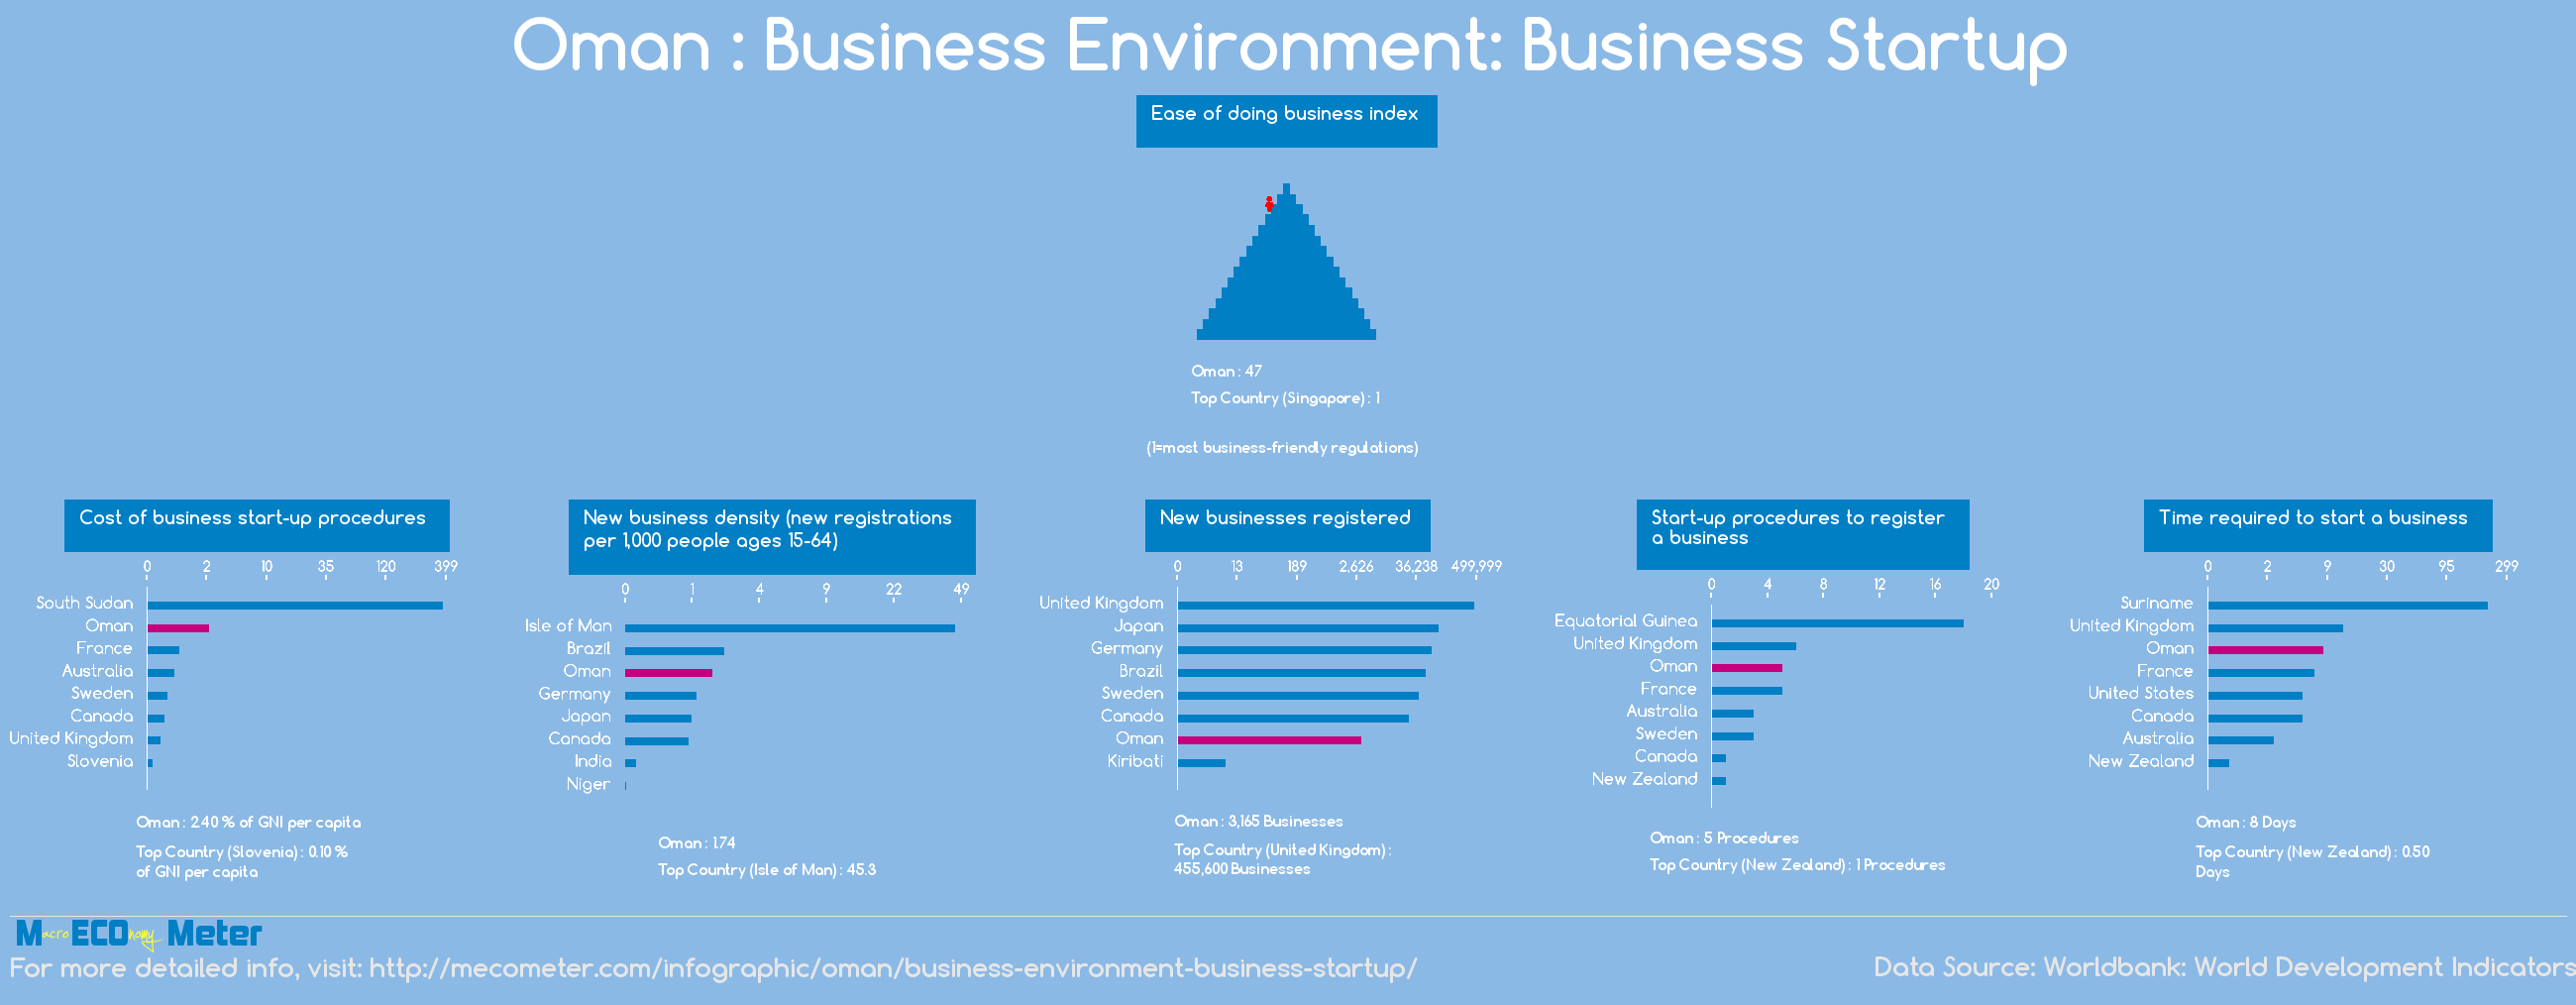 Oman : Business Environment: Business Startup